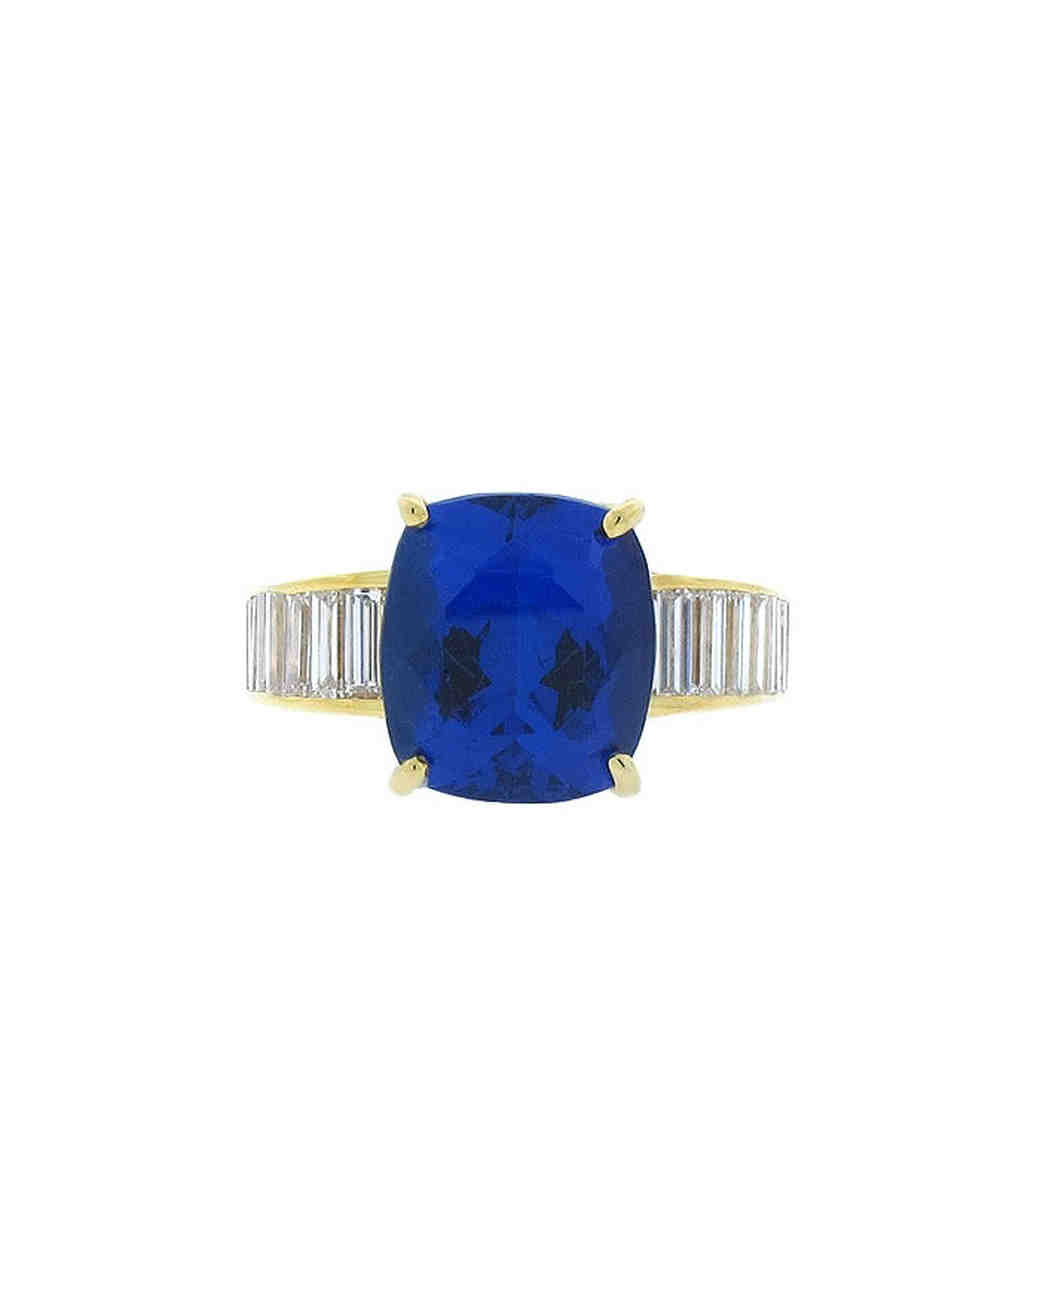 mega crossover graff blue of stone superb diamond a diamonds ring by expensive twin design colored tinted best thierrymartin ultra rare